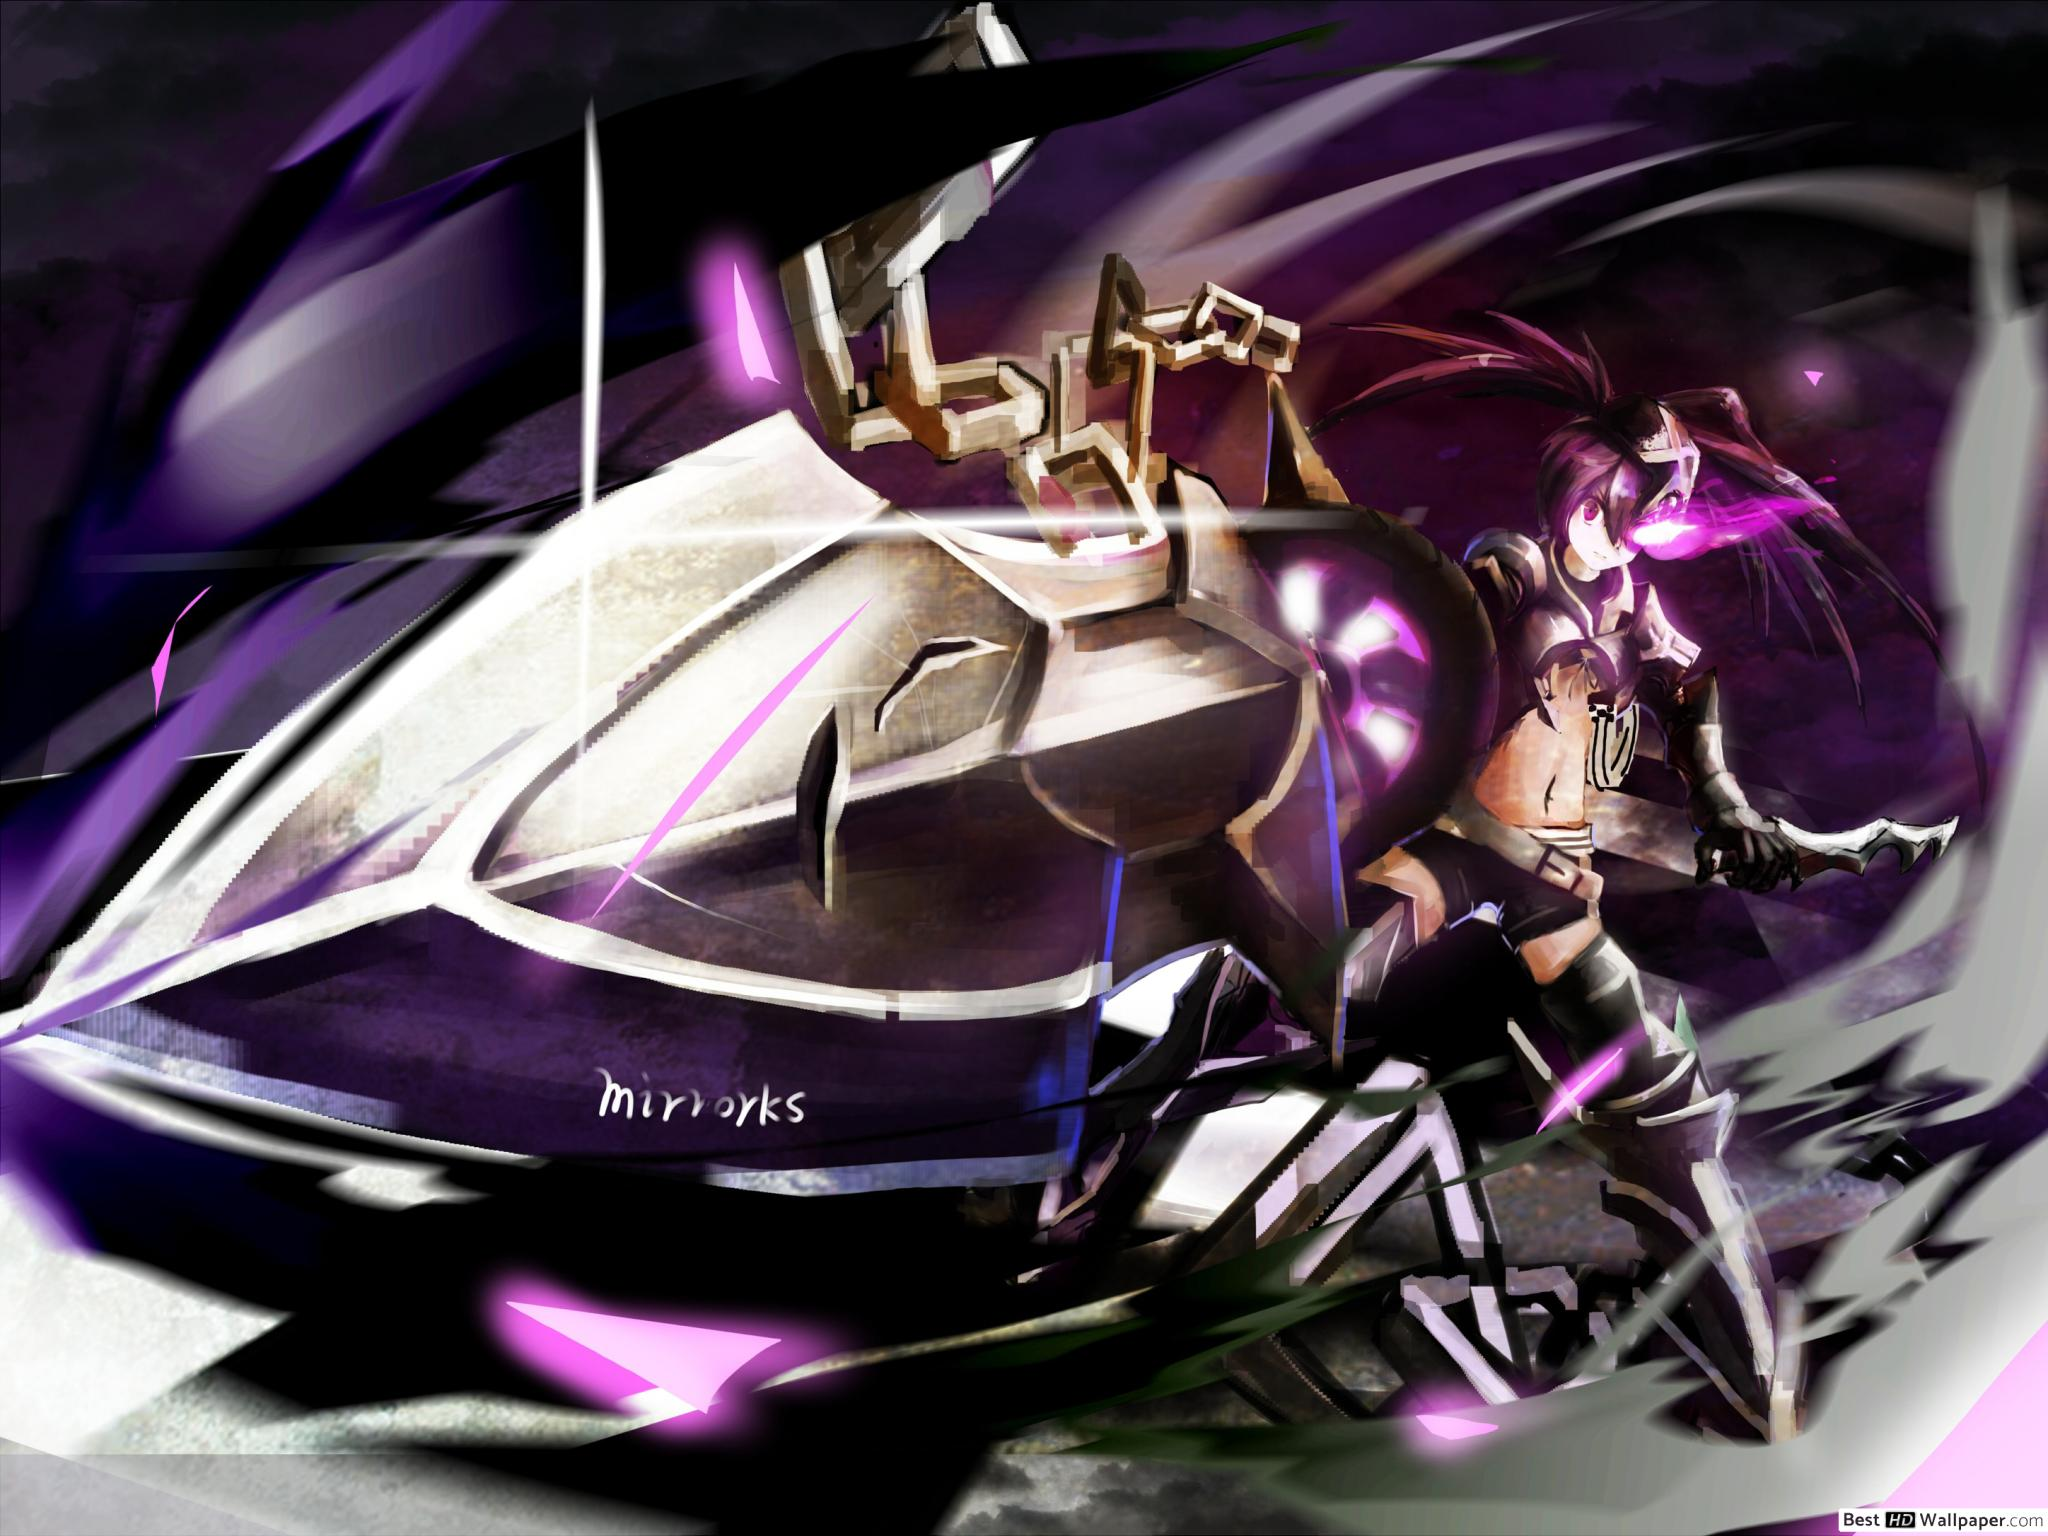 IBRS Black Rock Shooter HD wallpaper download 2048x1536